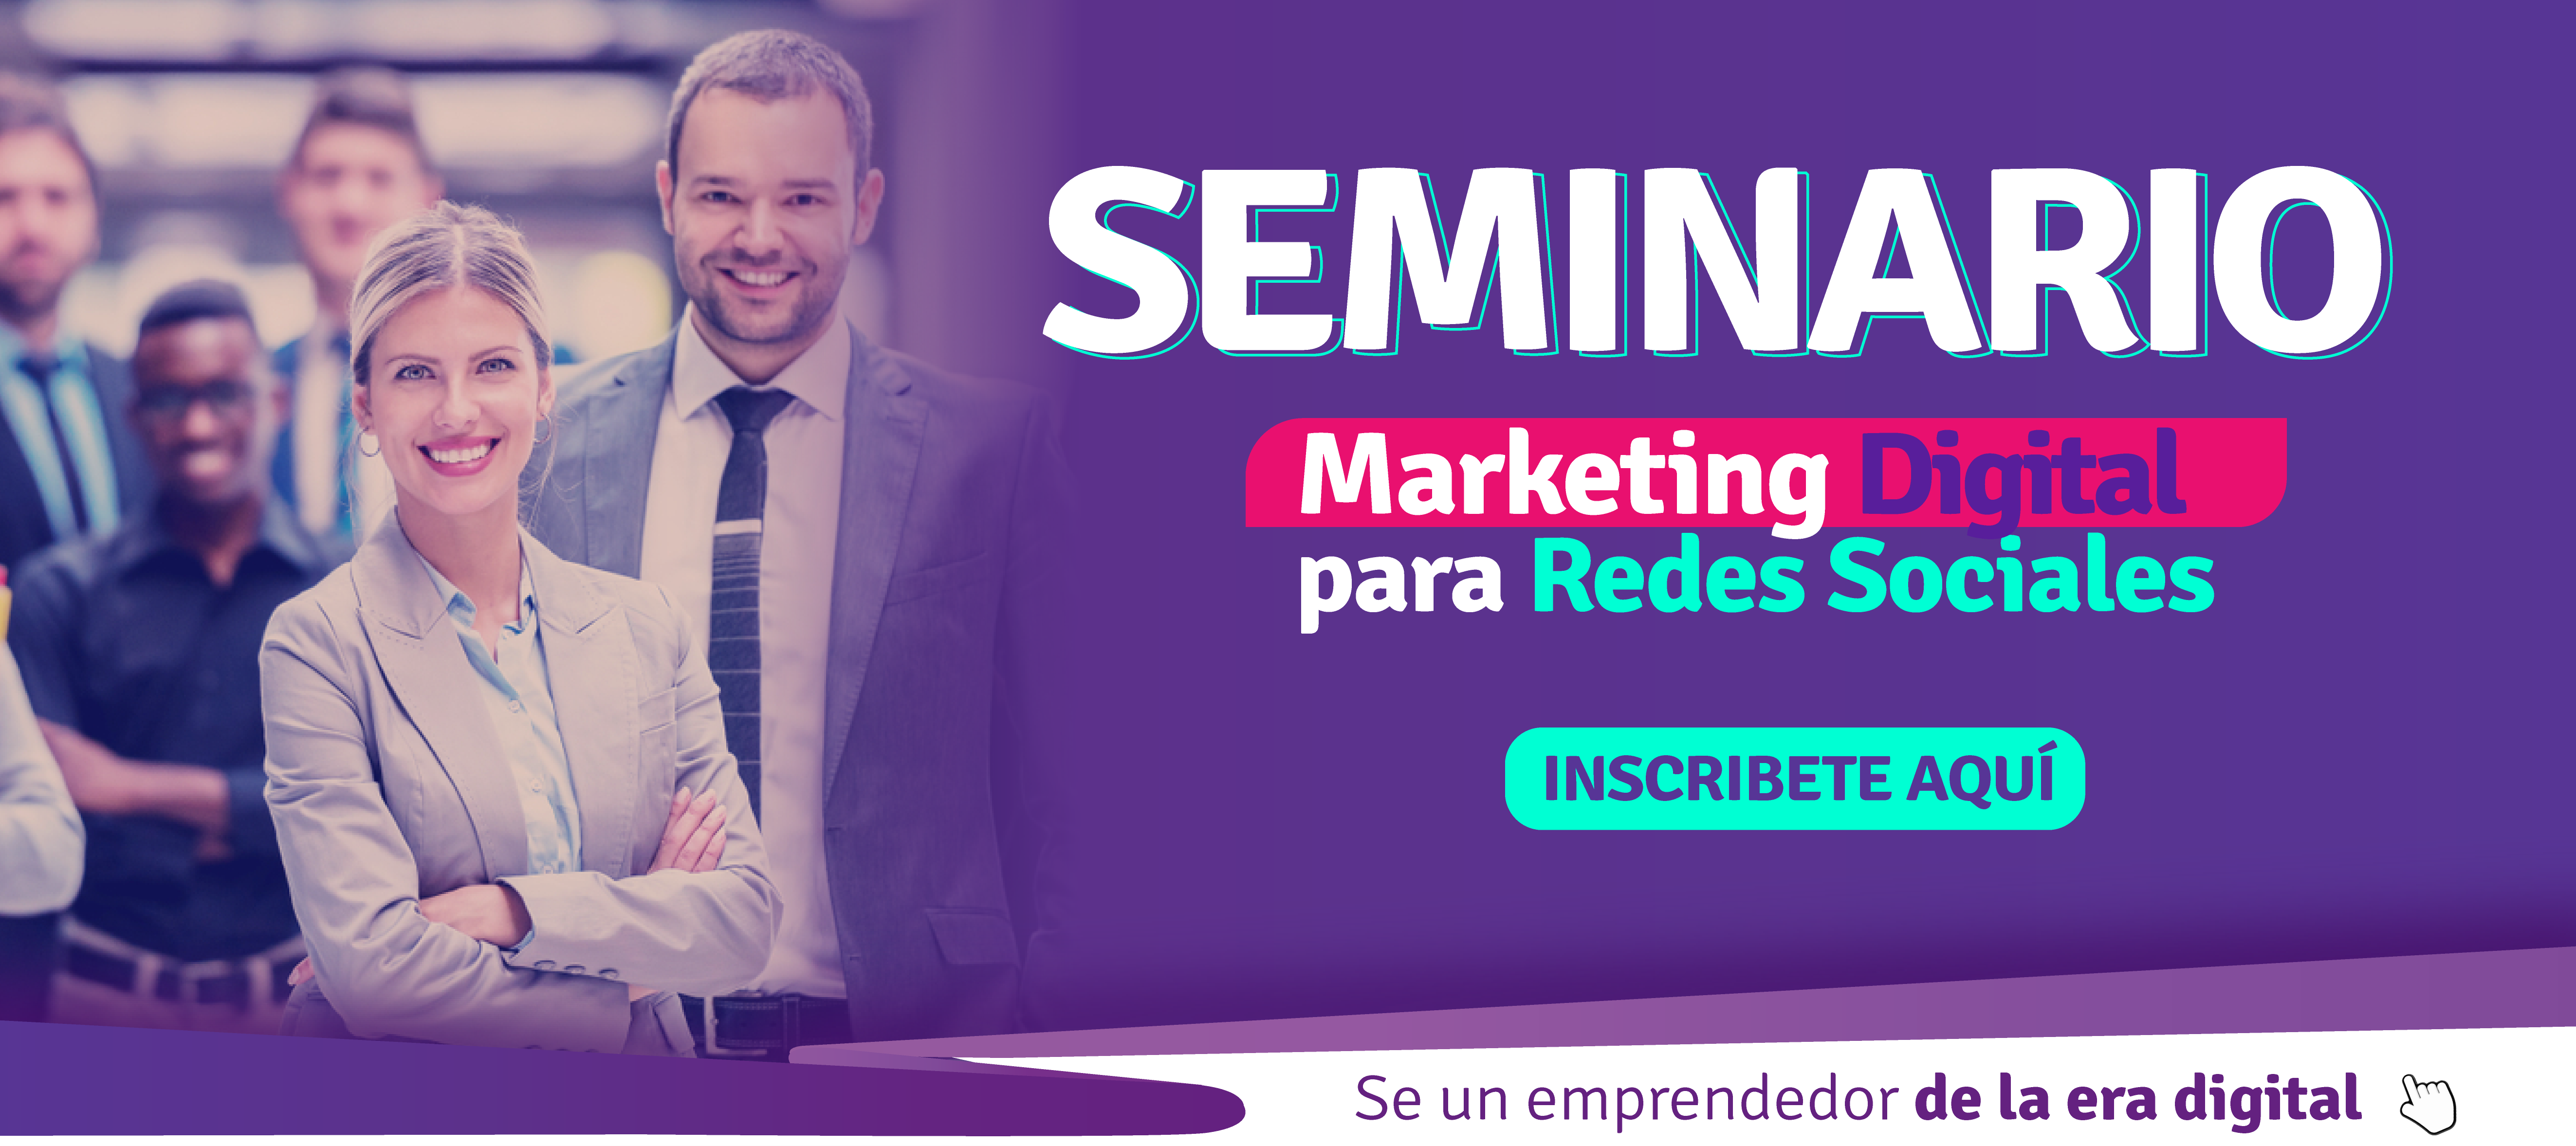 Seminario-Marketing-Digital-Redes-Sociales-8-mayo-12